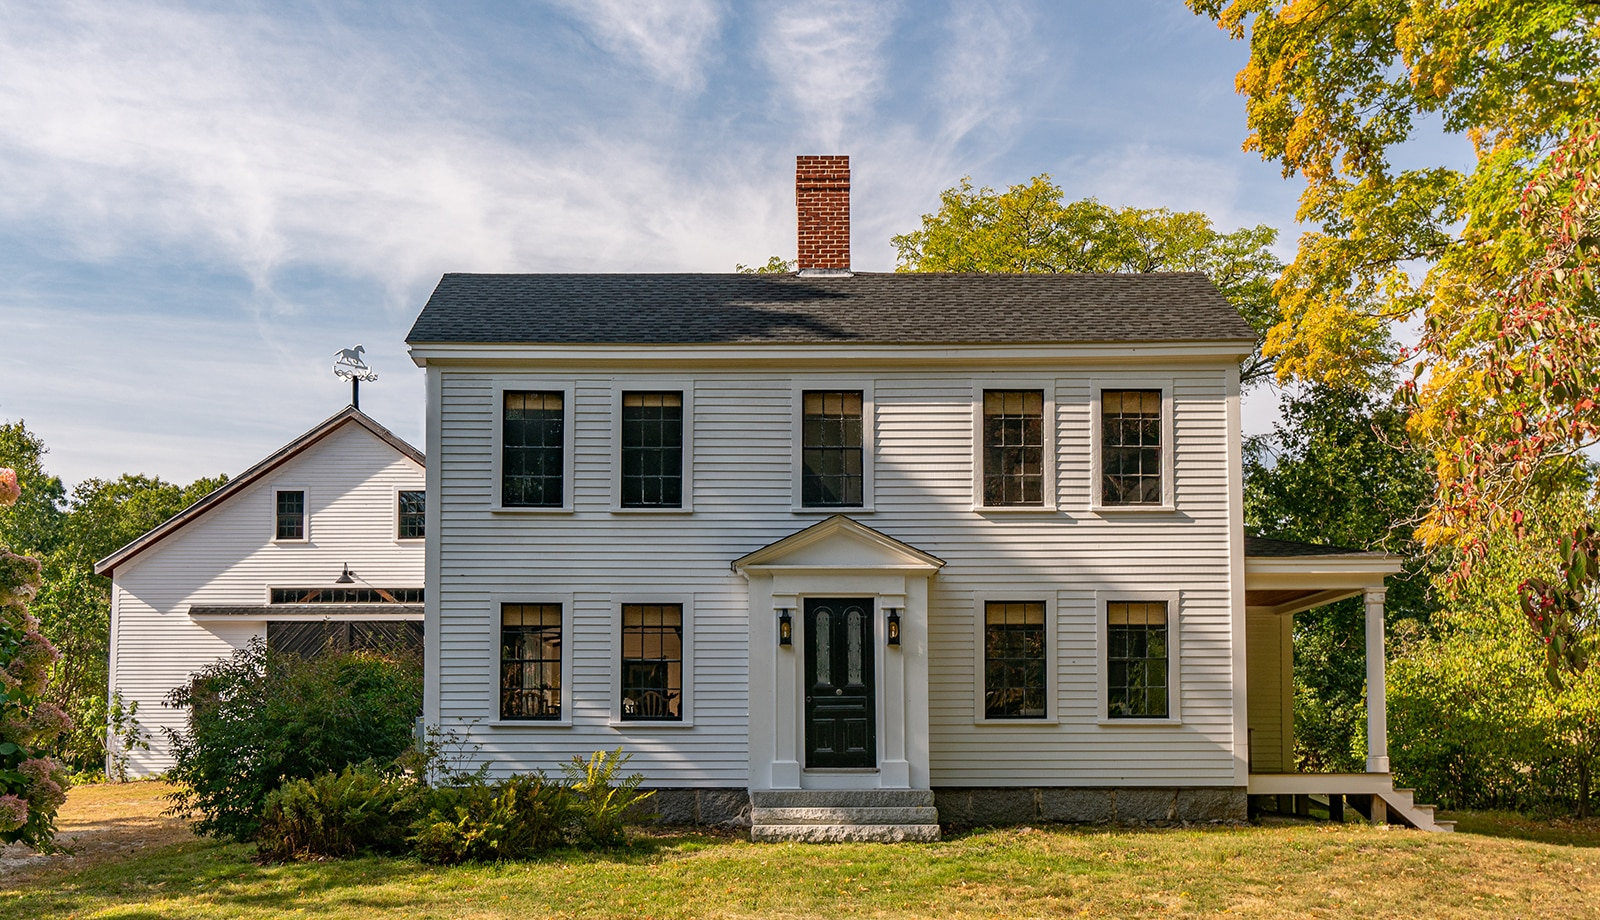 Arrowhead Farmhouse Newburyport MA Exterior hirez EDITED